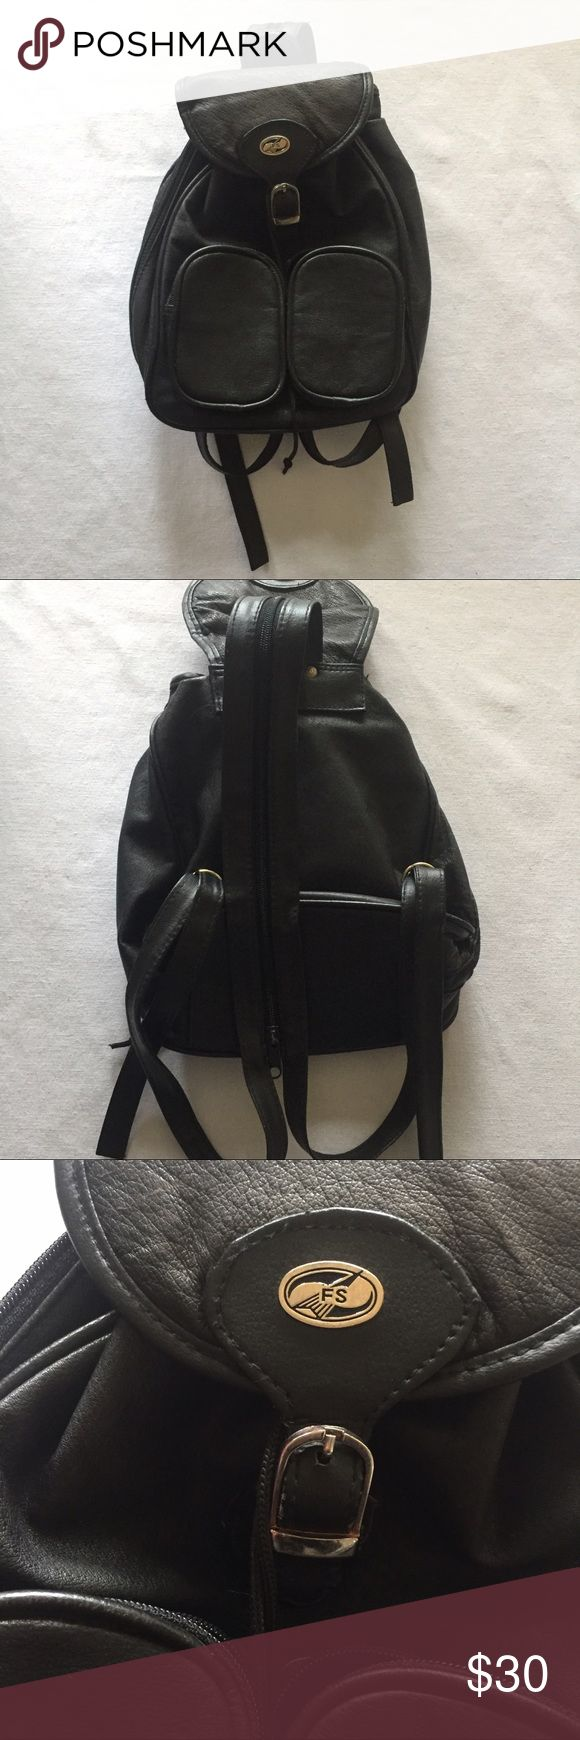 Leather Mini Backpack Purse Real leather backpack Purse is of unknown brand and is pre-loved but in good condition. Top flap has slight discoloration from either sun or water, but is not that noticeable. Has so many pockets and zippers and would be perfect for carrying all your things to summer festivals! Bags Backpacks